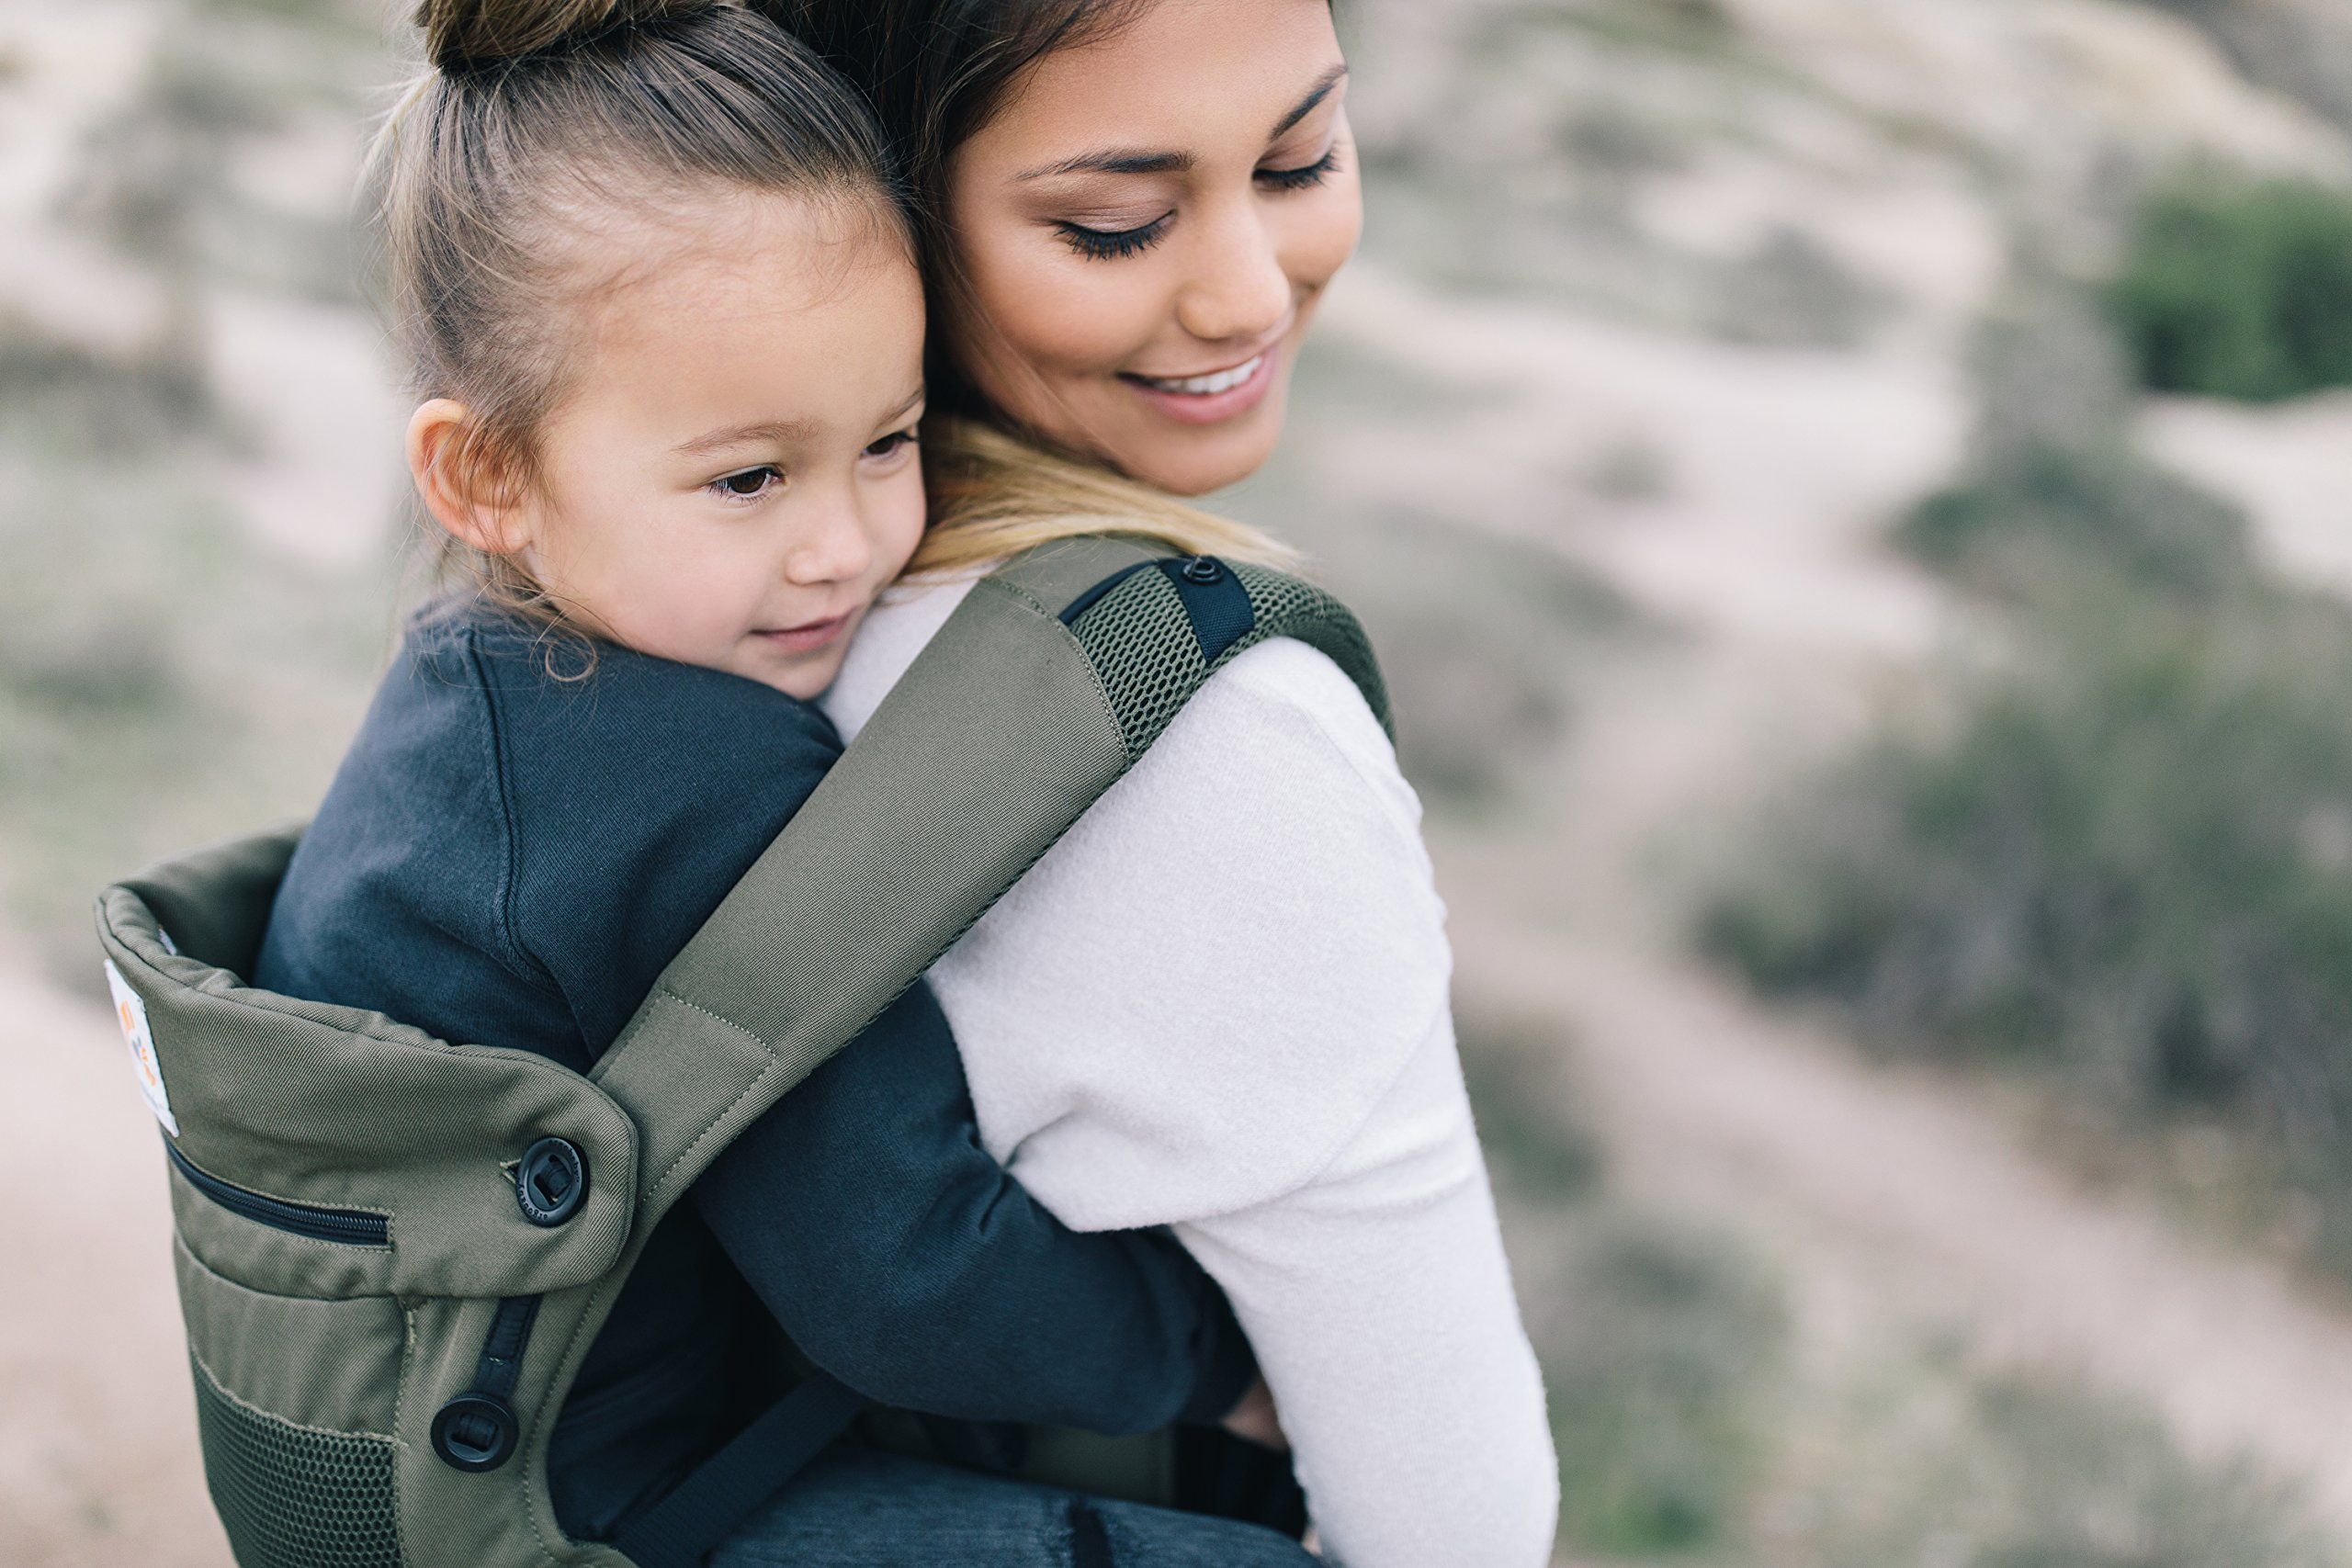 Ergobaby Baby Carrier up to 3 years (12-45 lbs) 360 Cool Air Khaki Green, 4 Ergonomic Carry Positions, Front Back Baby Carrier front facing, Backpack Ergobaby Ergonomic baby carrier for the summer, with 4 ergonomic carry positions: front-inward, back, hip, and front-outward. The carrier is suitable for babies and toddlers weighing 5.5-20 kg (12-45 lbs), and can be used as a back carrier. Also with insert for newborn babies weighing 3.2-5.5 kg (7-12 lbs), sold separately. NEW - The waistbelt with lumbar support can be worn a little higher or lower to support the lower back and provide optimal comfort, and has adjustable padded shoulder straps. The carrier is suitable for men and women. Maximum baby comfort - Breathable 3D air mesh material provides an optimal temperature for your baby on warm days. The structured bucket seat supports the correct frog-leg position for the baby. The carrier also has a neck support and privacy hood with 50+ UV sun protection. 8